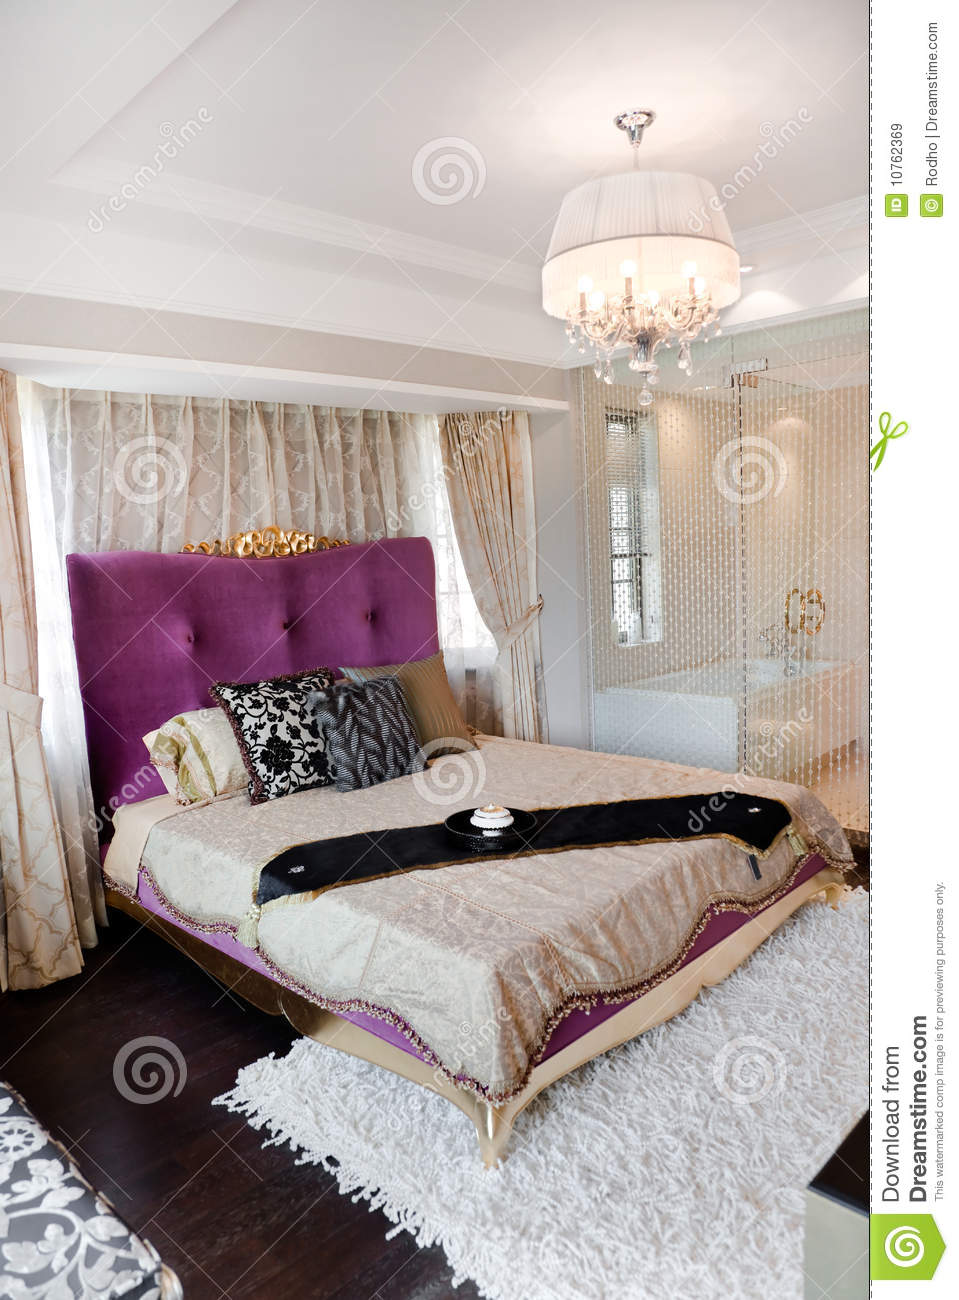 King Size Bed In Modern Bedroom Royalty Free Stock Images - Image ...